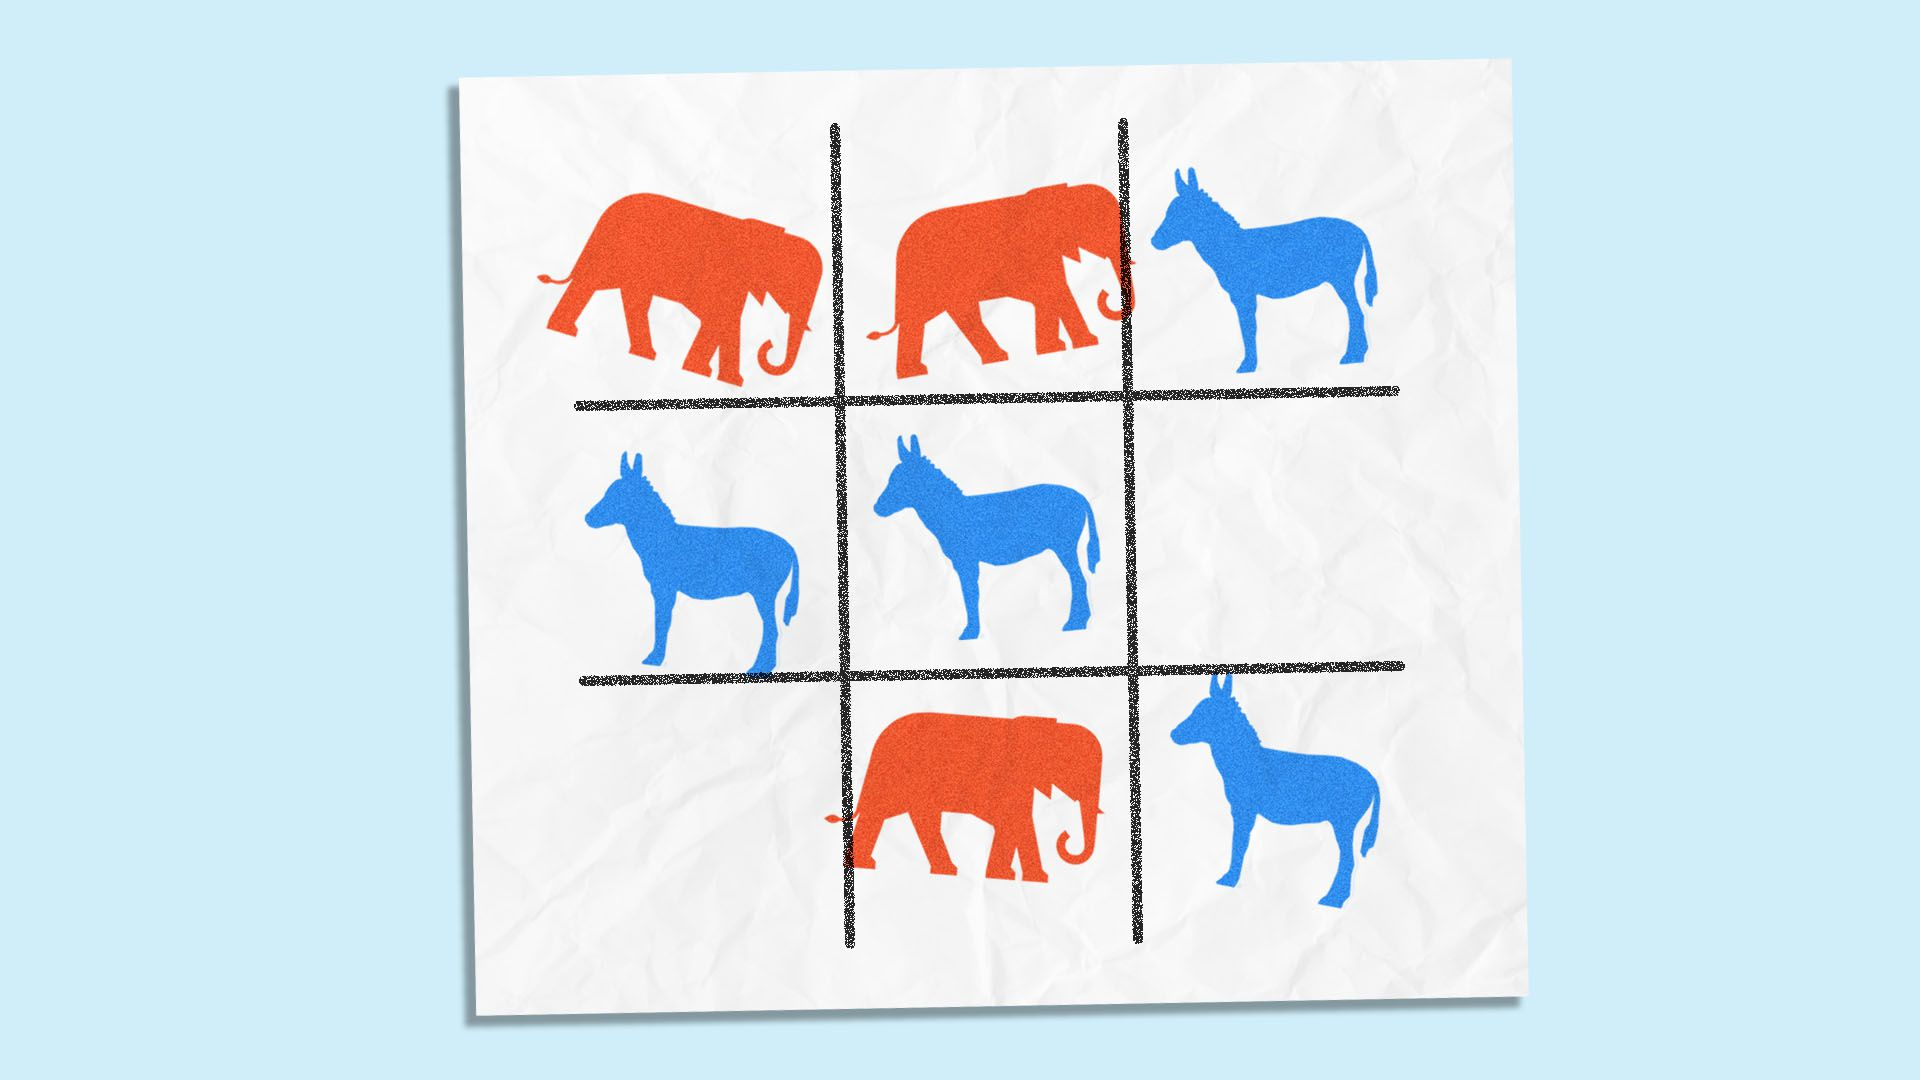 Illustration of a tic-tac-toe game with elephants and donkeys